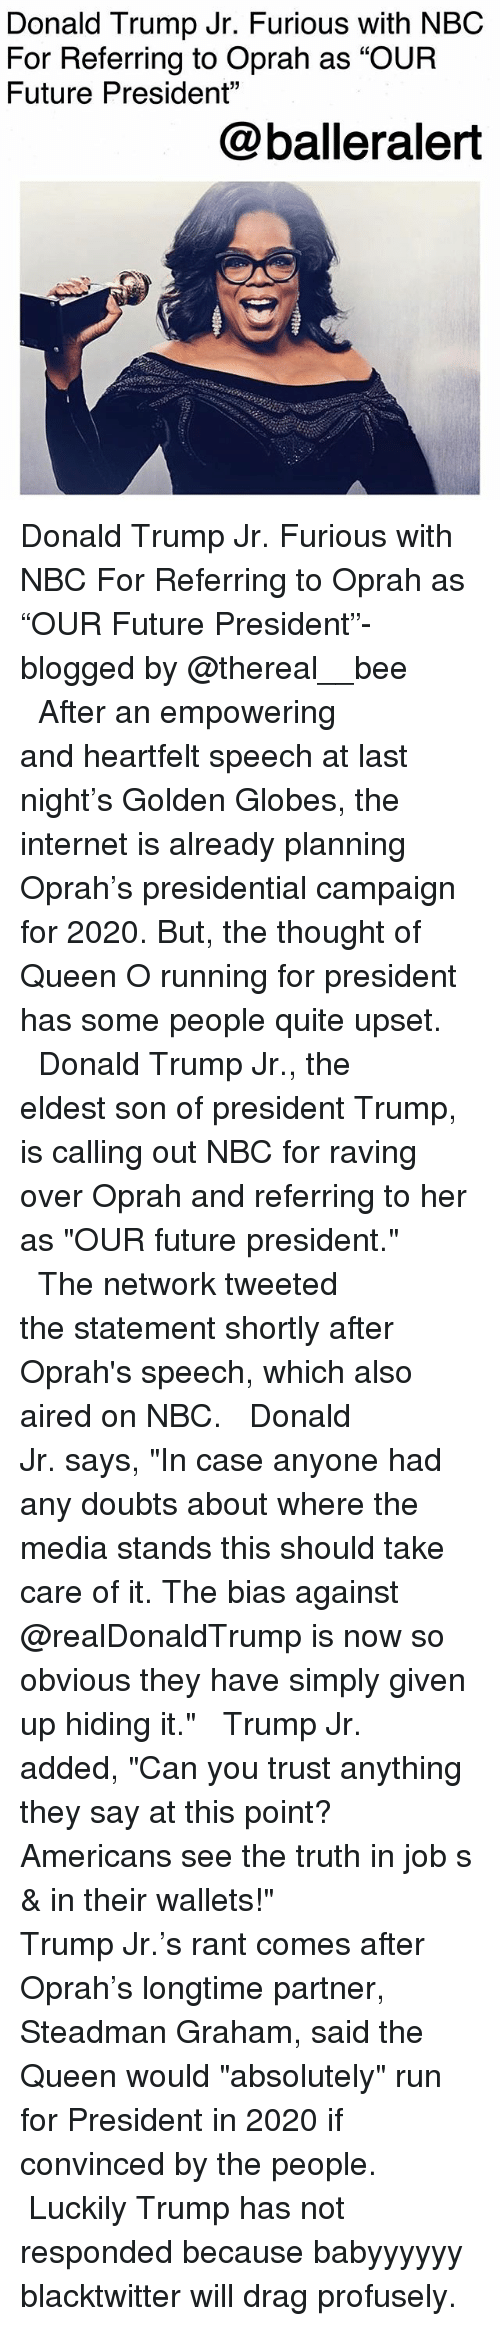 "Golden Globes: Donald Trump Jr. Furious with NBC  For Referring to Oprah as ""OUR  Future President""  @balleralert Donald Trump Jr. Furious with NBC For Referring to Oprah as ""OUR Future President""-blogged by @thereal__bee ⠀⠀⠀⠀⠀⠀⠀⠀⠀ ⠀⠀ After an empowering and heartfelt speech at last night's Golden Globes, the internet is already planning Oprah's presidential campaign for 2020. But, the thought of Queen O running for president has some people quite upset. ⠀⠀⠀⠀⠀⠀⠀⠀⠀ ⠀⠀ Donald Trump Jr., the eldest son of president Trump, is calling out NBC for raving over Oprah and referring to her as ""OUR future president."" ⠀⠀⠀⠀⠀⠀⠀⠀⠀ ⠀⠀ The network tweeted the statement shortly after Oprah's speech, which also aired on NBC. ⠀⠀⠀⠀⠀⠀⠀⠀⠀ ⠀⠀ Donald Jr. says, ""In case anyone had any doubts about where the media stands this should take care of it. The bias against @realDonaldTrump is now so obvious they have simply given up hiding it."" ⠀⠀⠀⠀⠀⠀⠀⠀⠀ ⠀⠀ Trump Jr. added, ""Can you trust anything they say at this point? Americans see the truth in job s & in their wallets!"" ⠀⠀⠀⠀⠀⠀⠀⠀⠀ ⠀⠀ Trump Jr.'s rant comes after Oprah's longtime partner, Steadman Graham, said the Queen would ""absolutely"" run for President in 2020 if convinced by the people. ⠀⠀⠀⠀⠀⠀⠀⠀⠀ ⠀⠀ Luckily Trump has not responded because babyyyyyy blacktwitter will drag profusely."